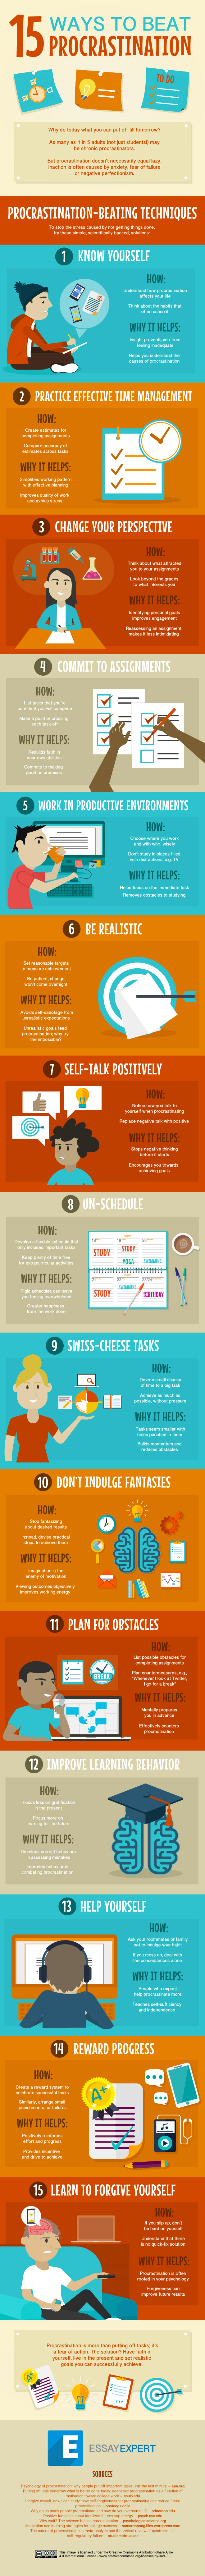 15 Ways to Overcome Procrastination and Get Stuff Done (Infographic)